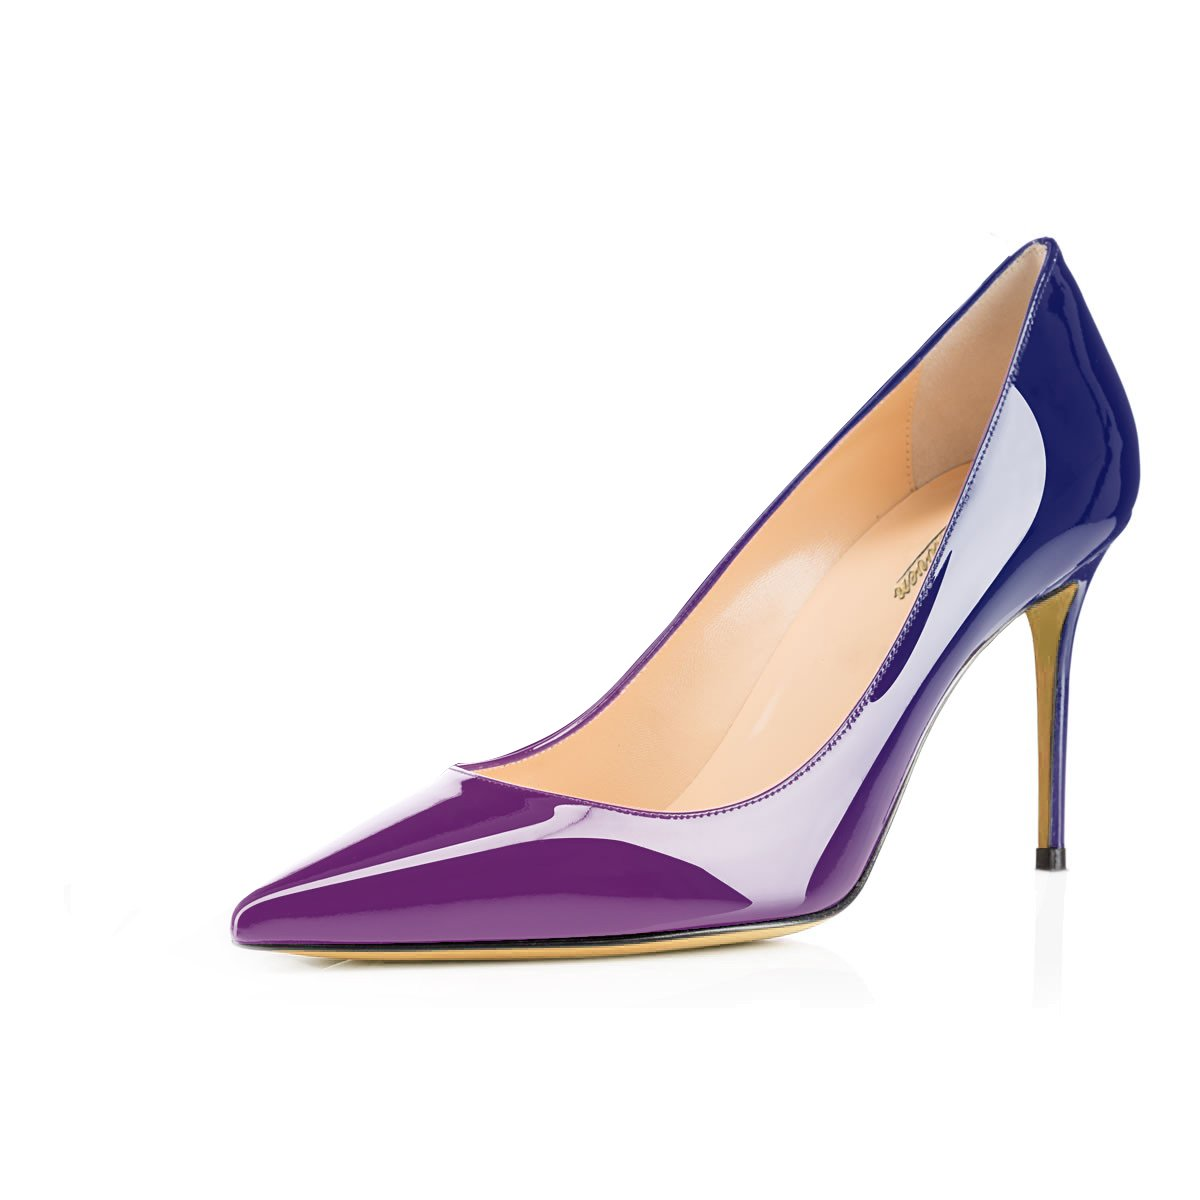 Modemoven Women's Purple Blue Pointed Toe Pumps Slip-on Office Business High Heels Sexy Stiletto Shoes 8.5 M US